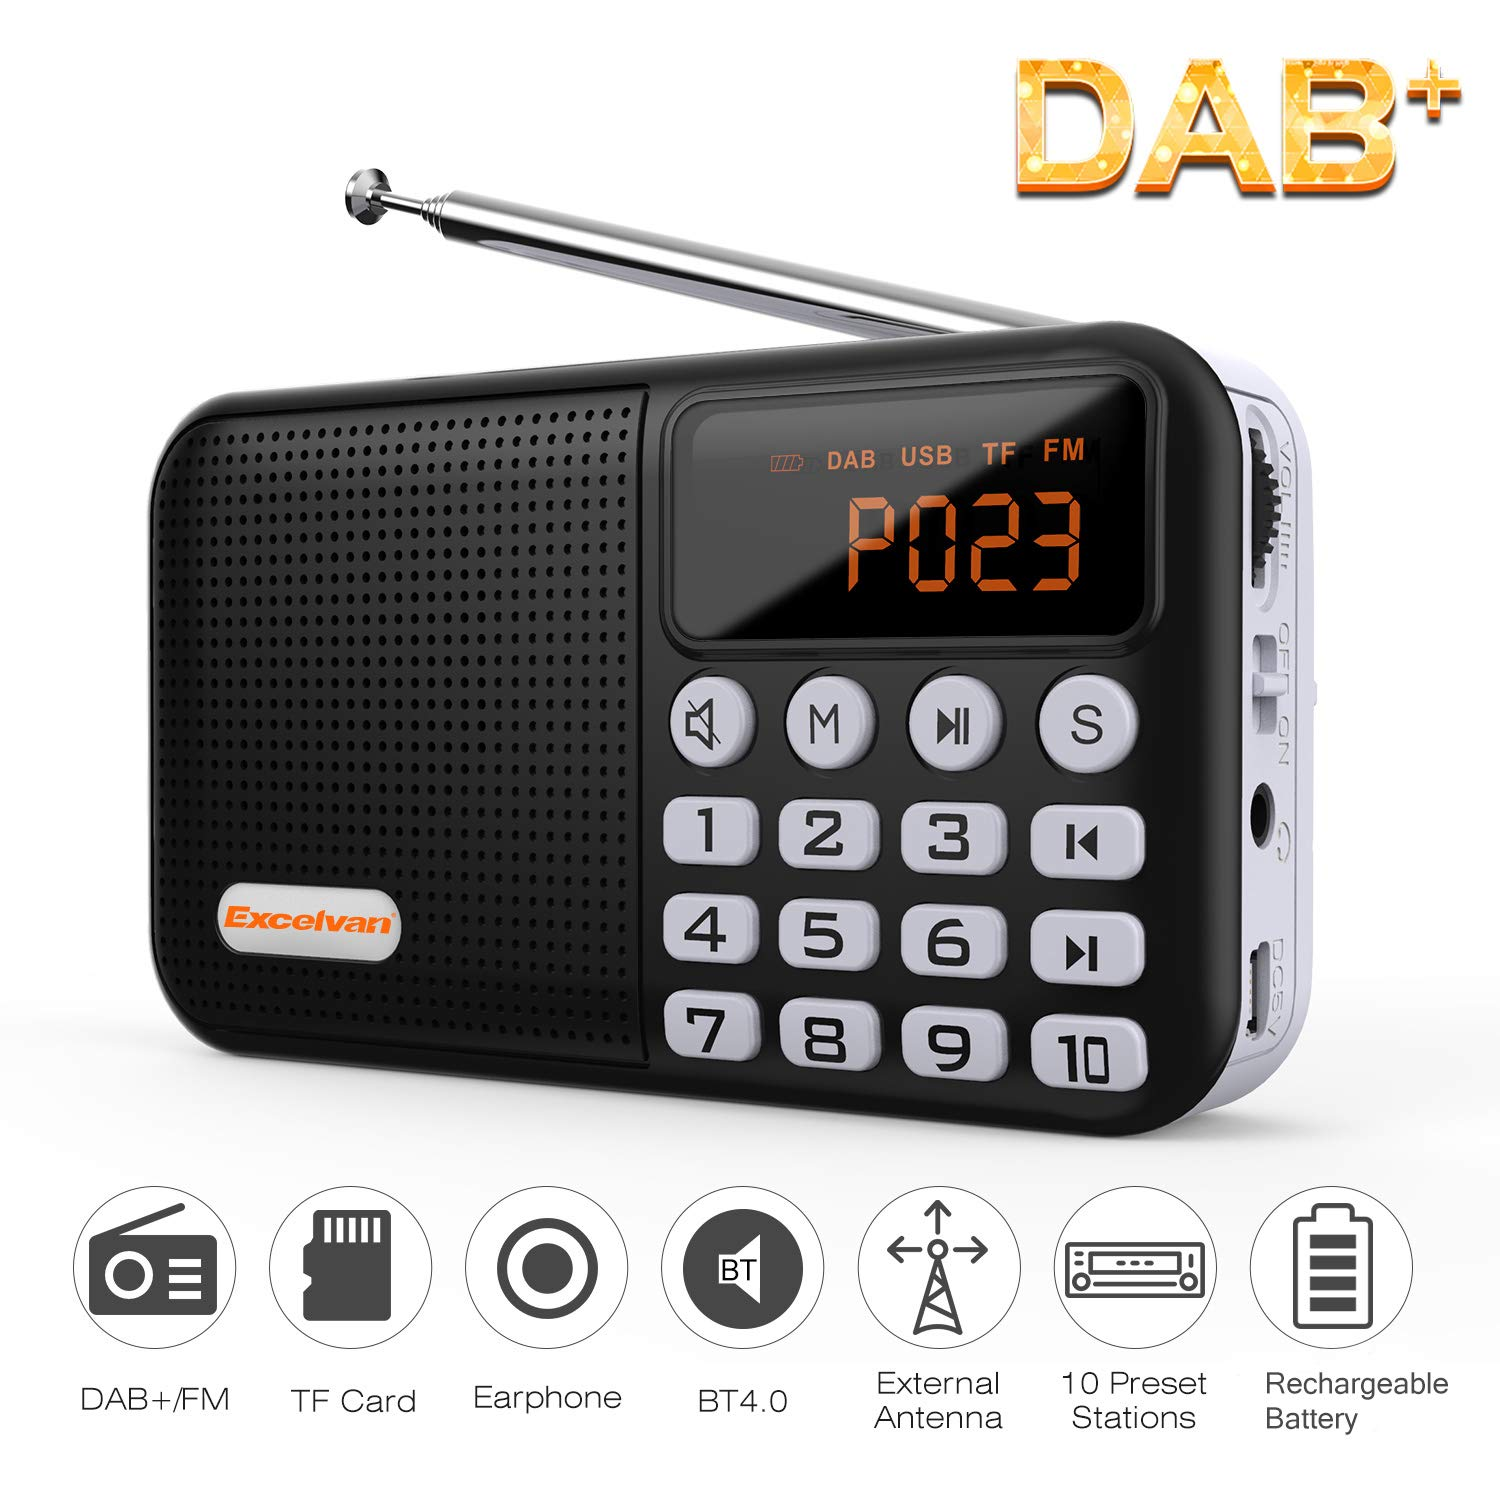 Excelvan Portable DAB / DAB+ Digital Radio with FM